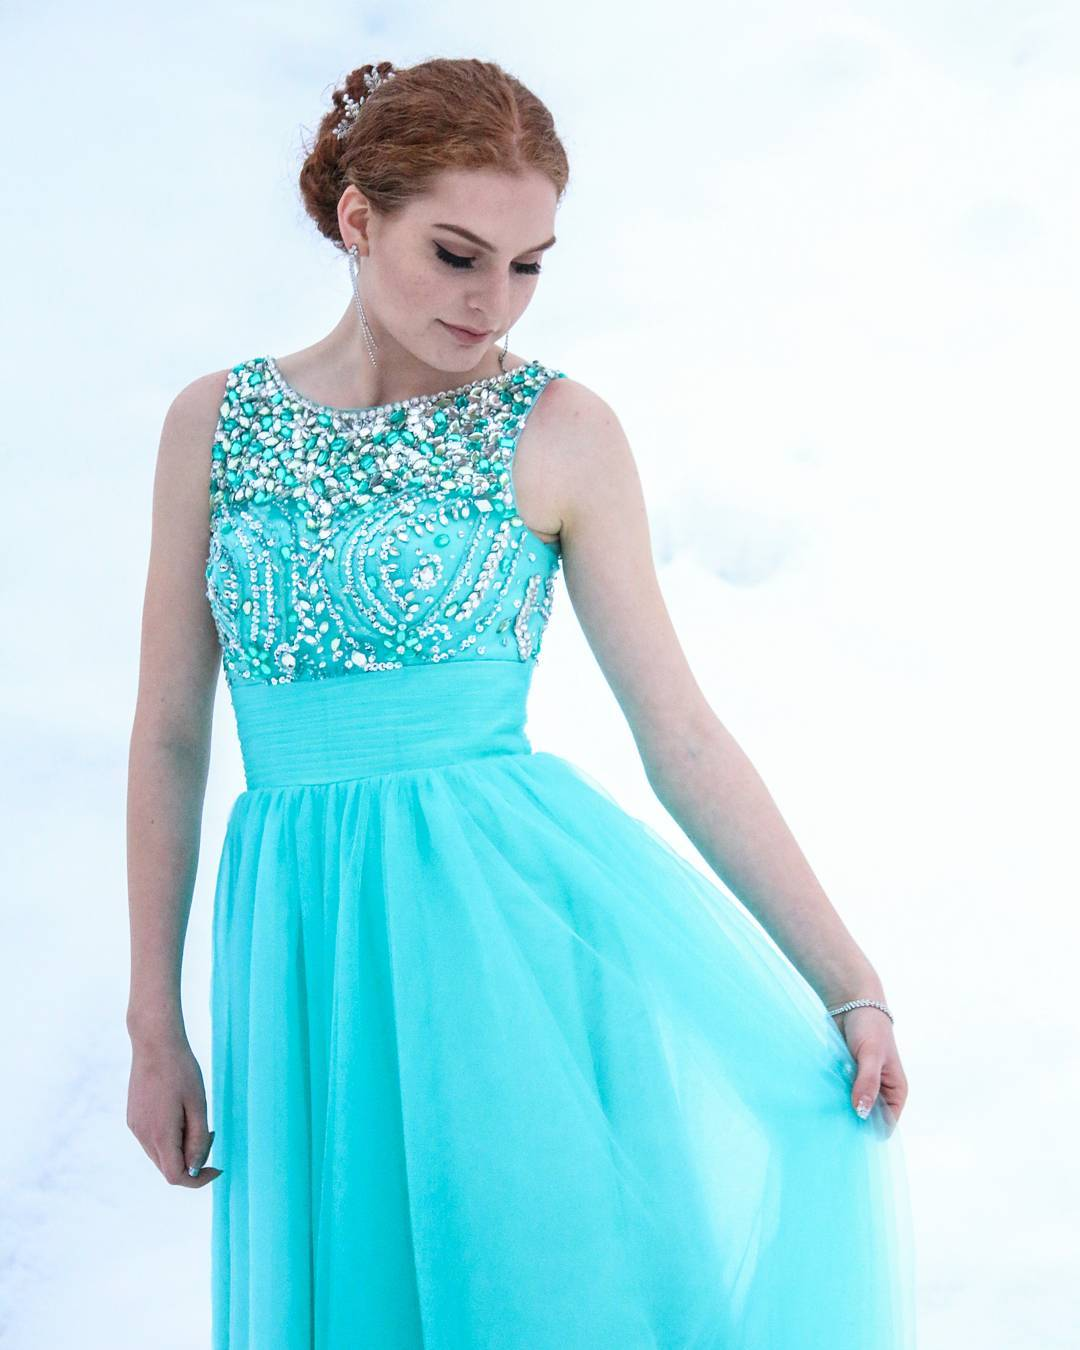 Turquoise bridesmaid dress adorned with stones